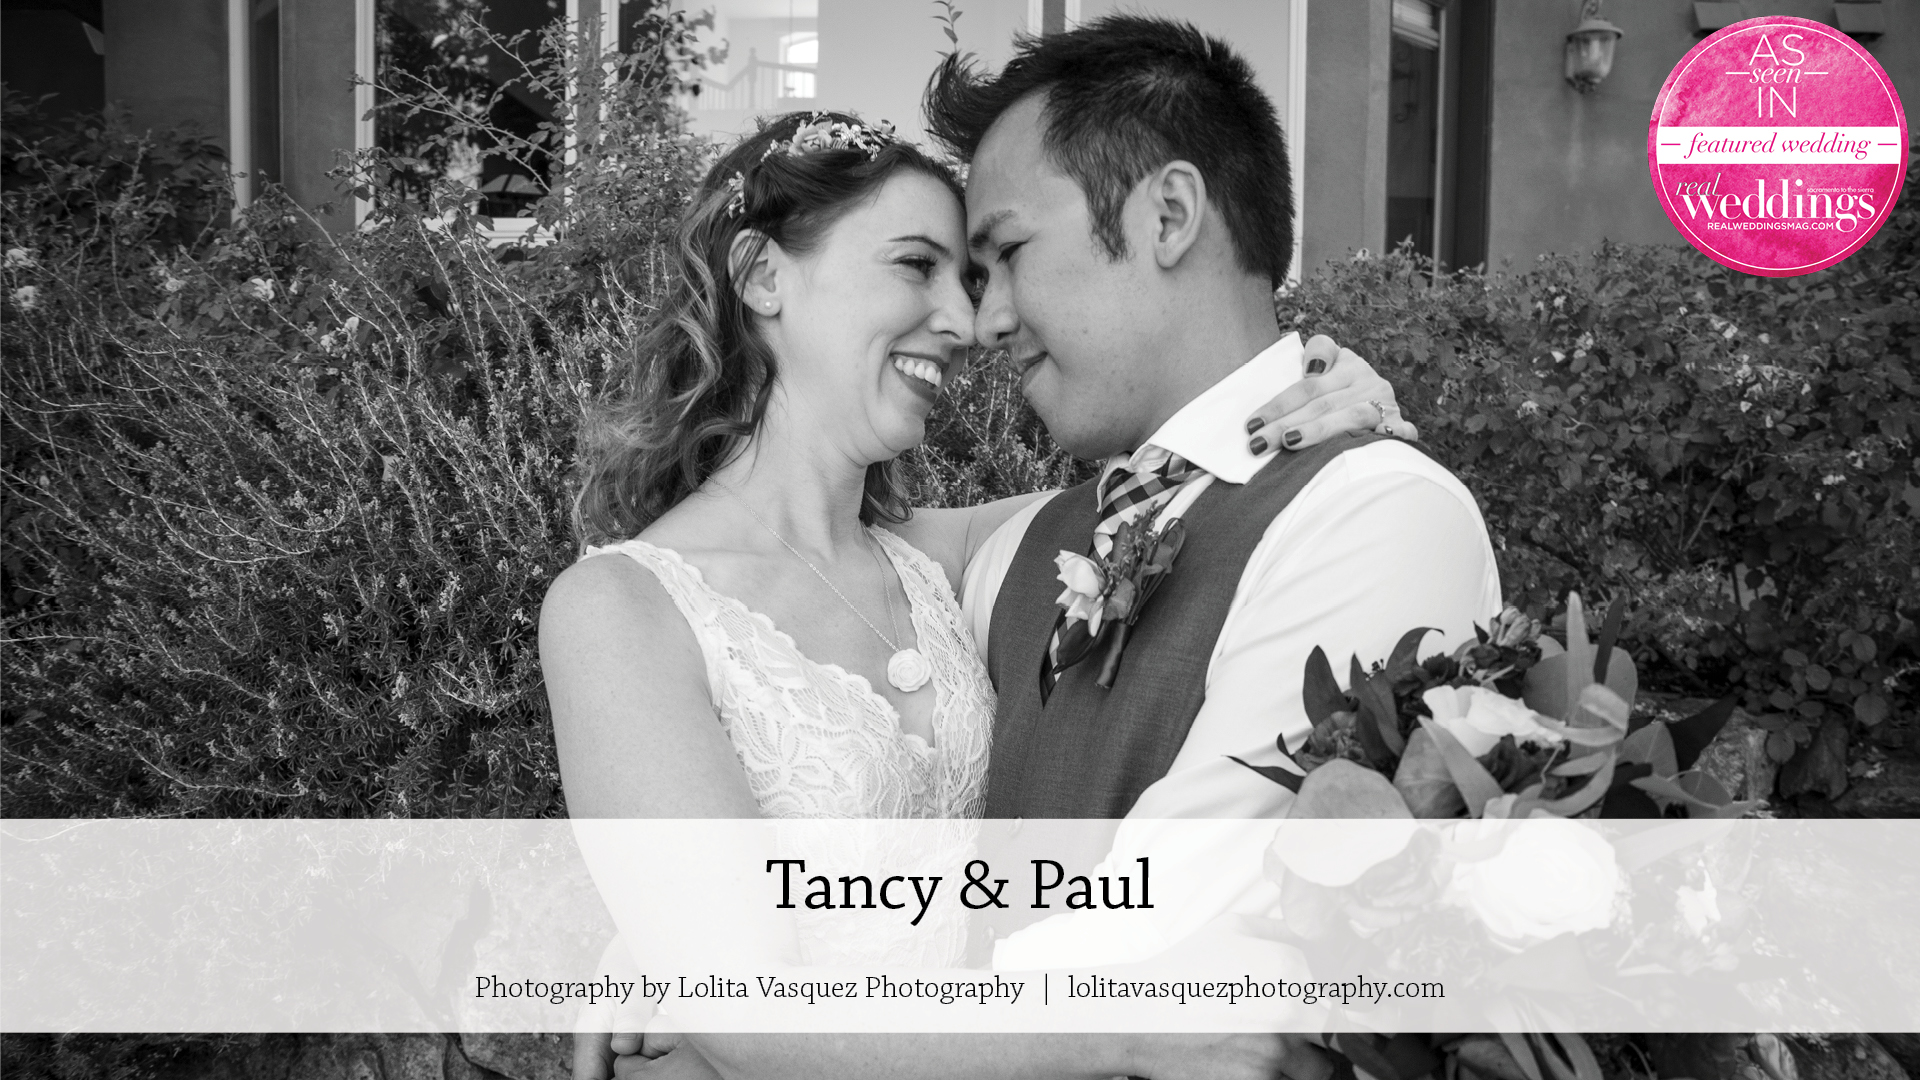 Tancy & Paul's wedding photographed by Lolita Vasquez Photography